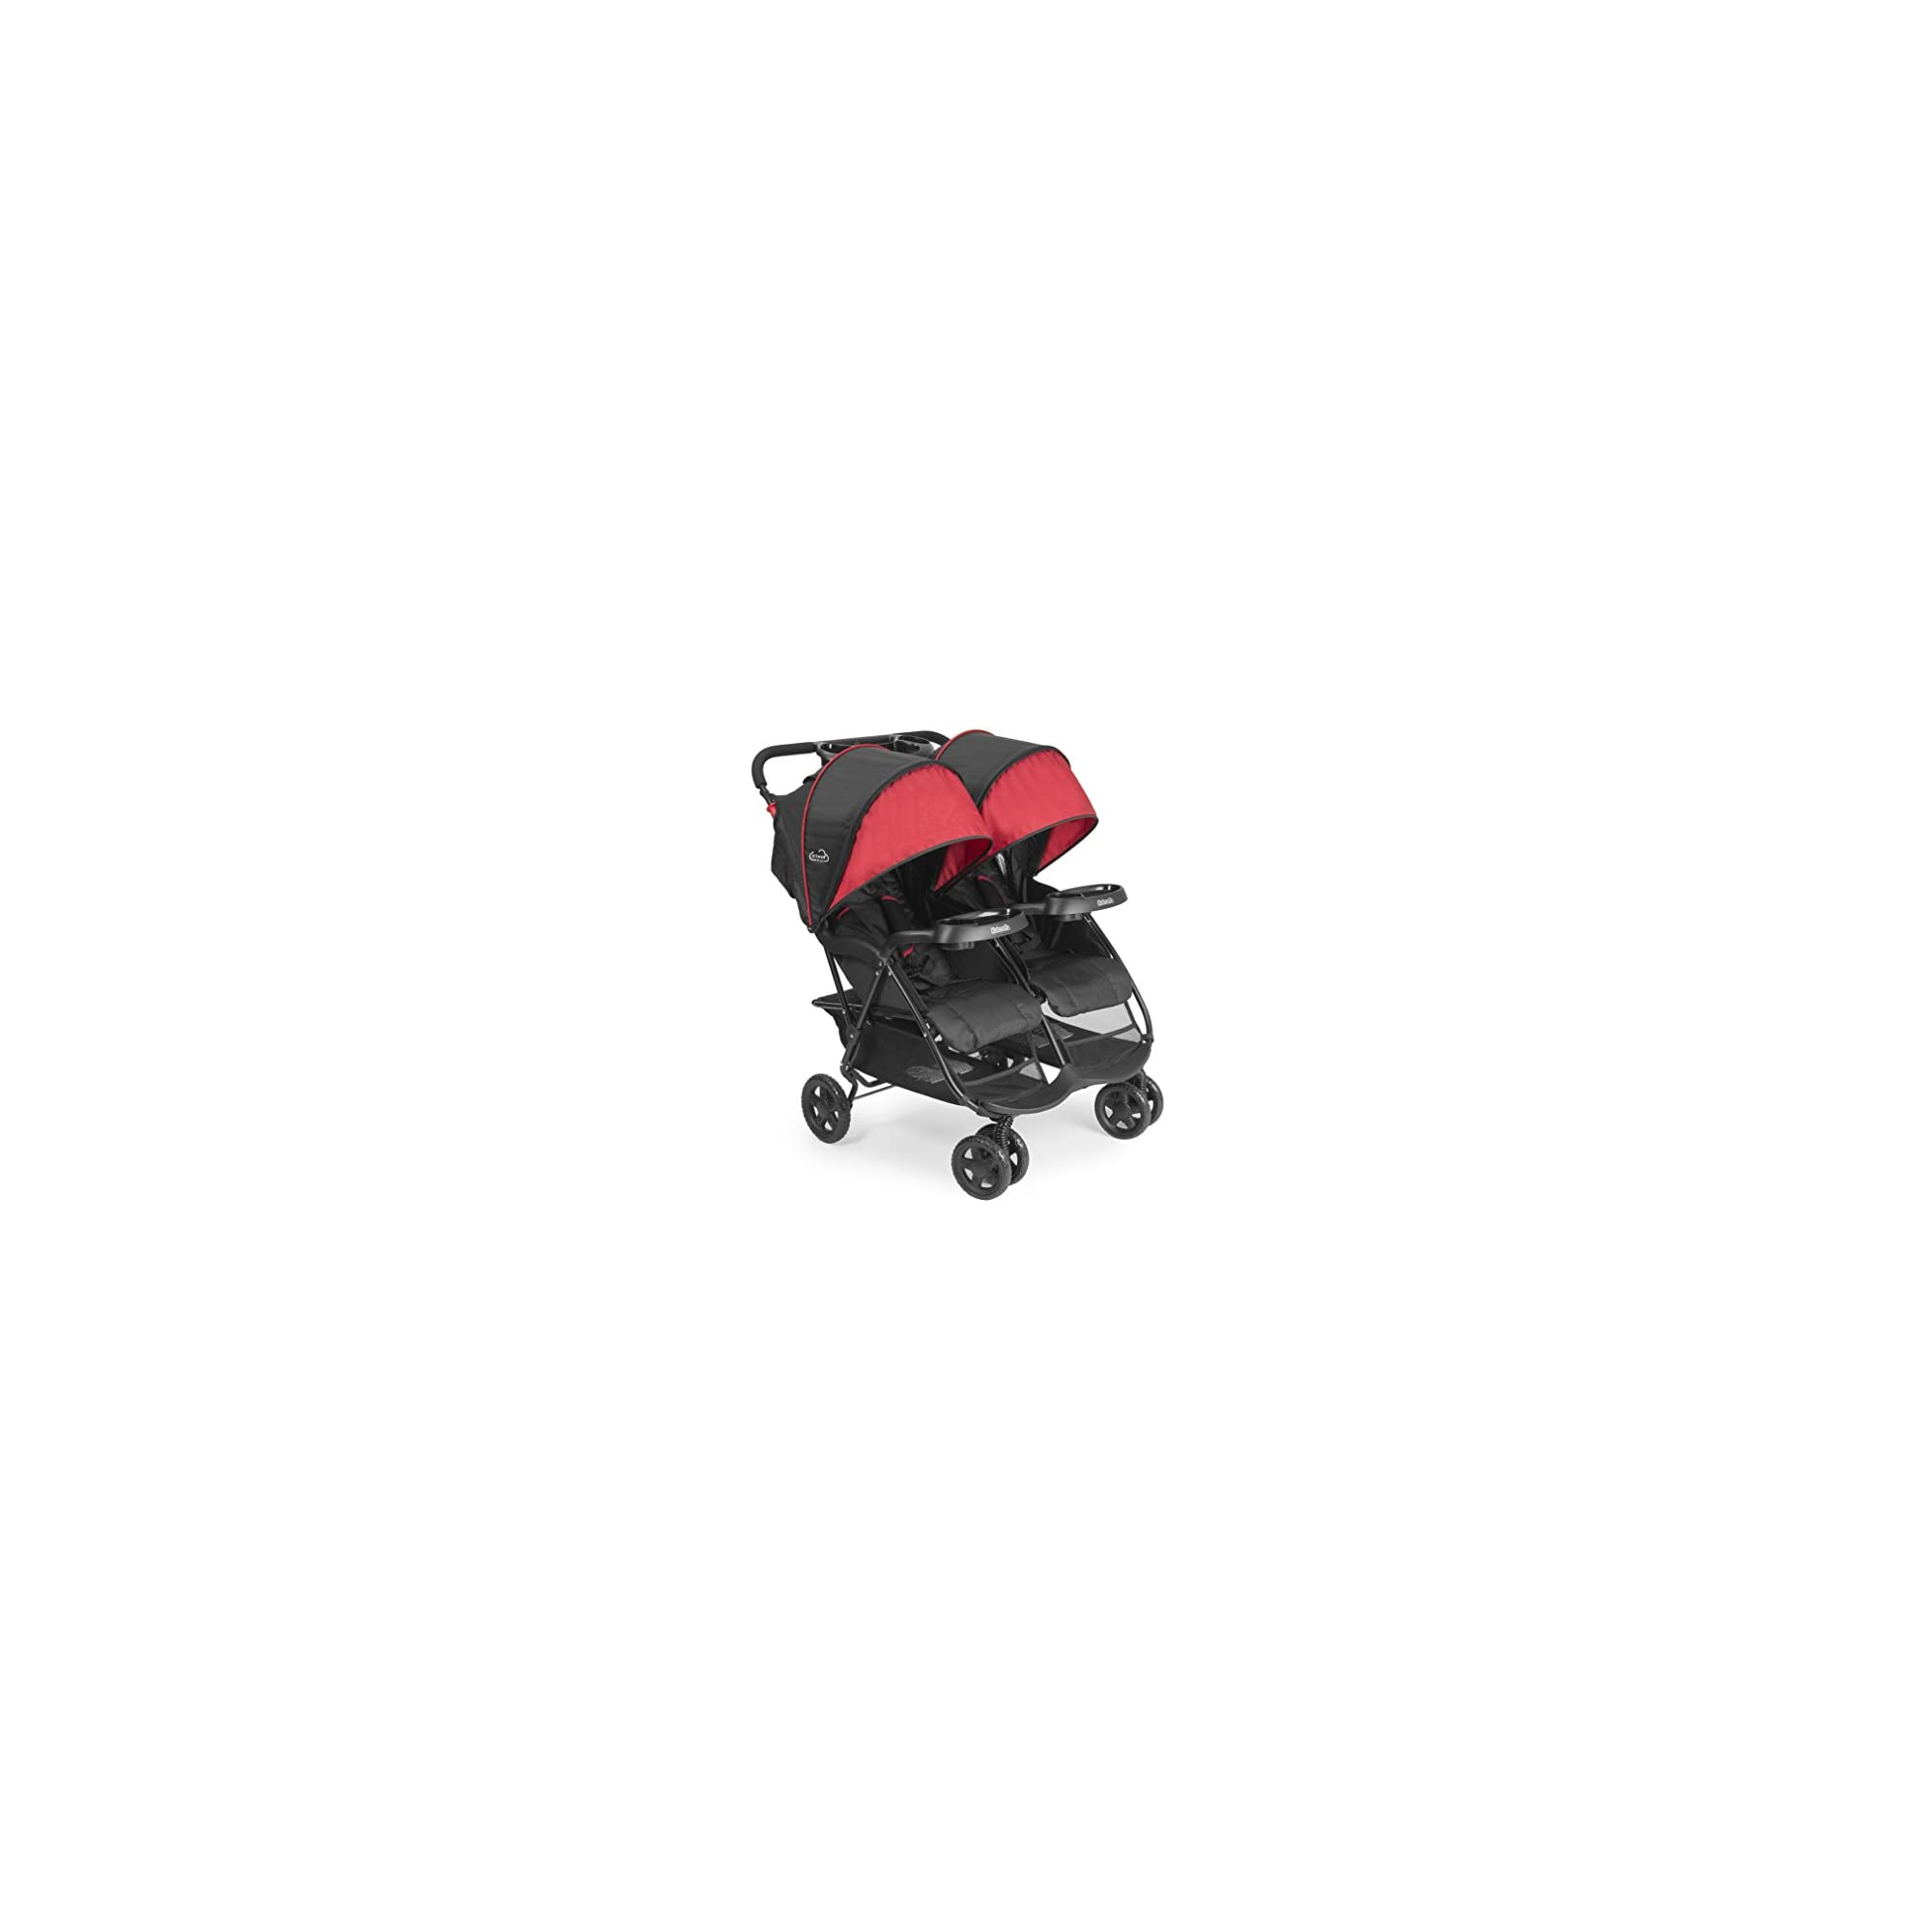 Kolcraft Cloud Plus Lightweight Double Stroller – 5-Point Safety System, Red/Black